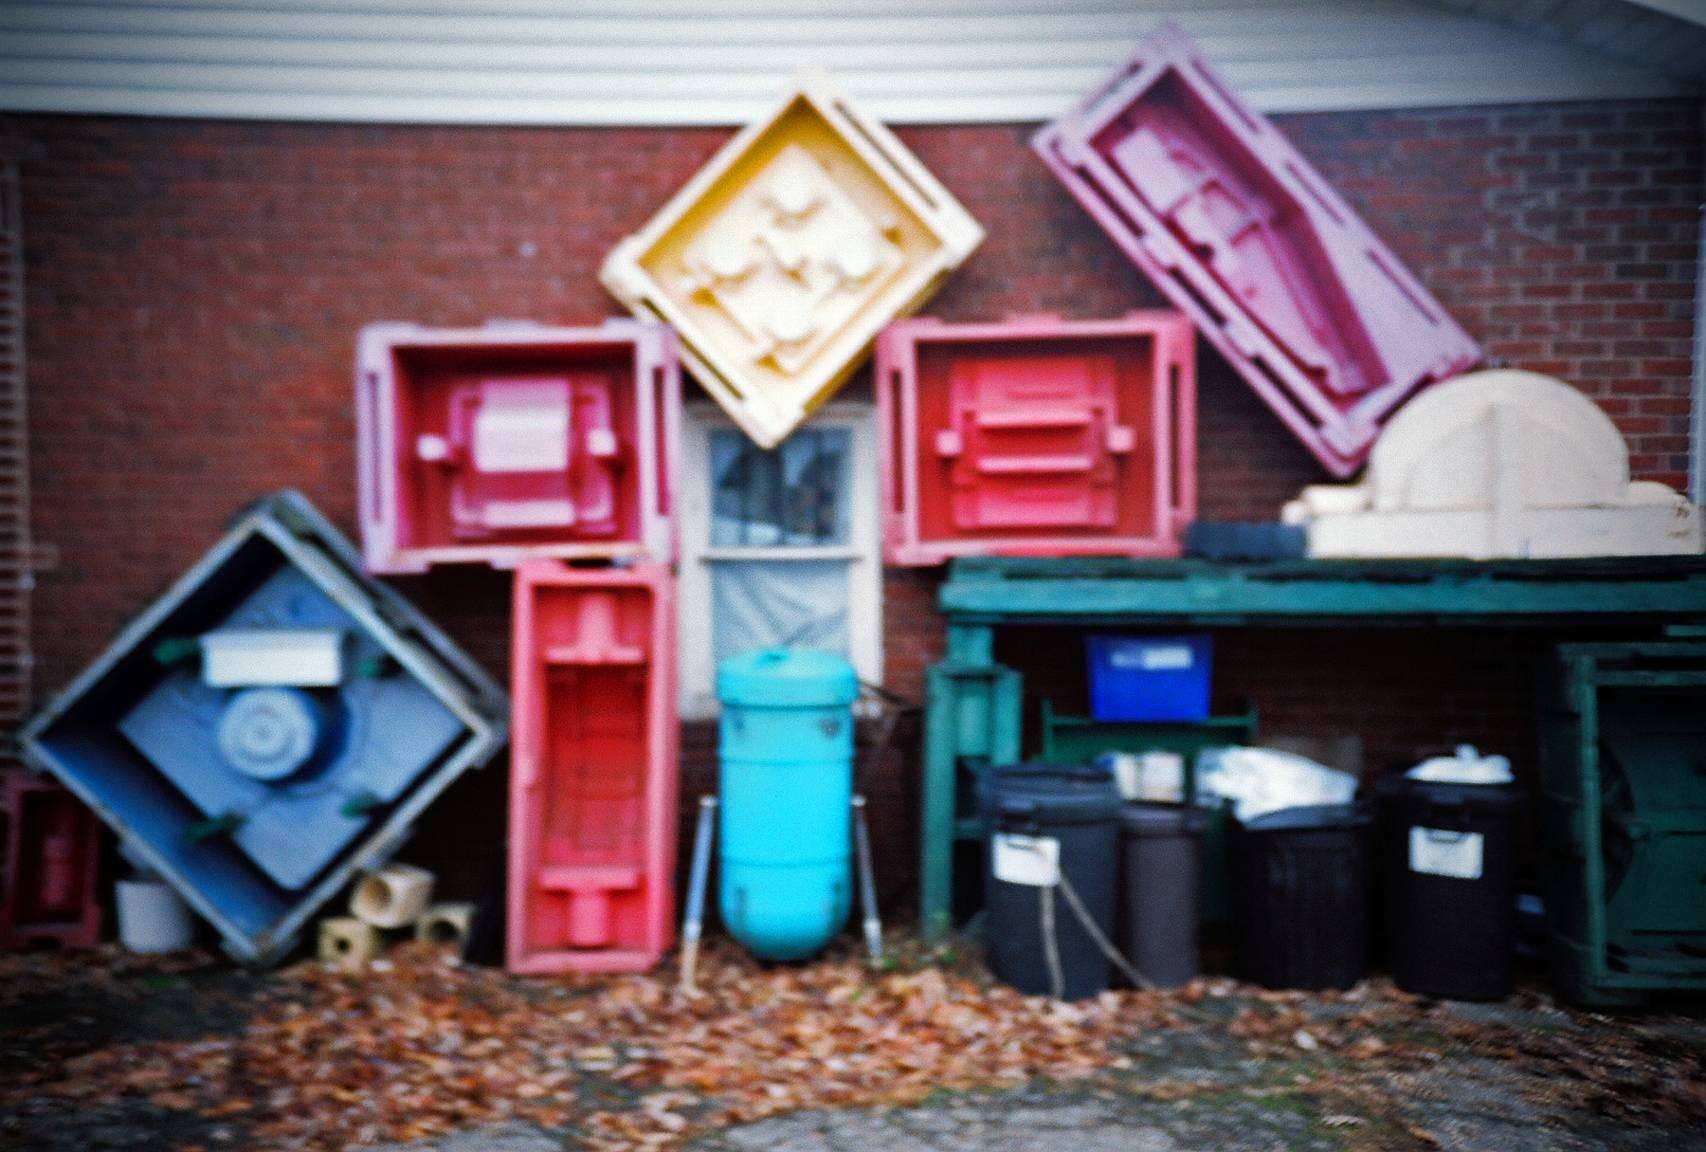 Canton Ohio The He Art of it All · Lomography